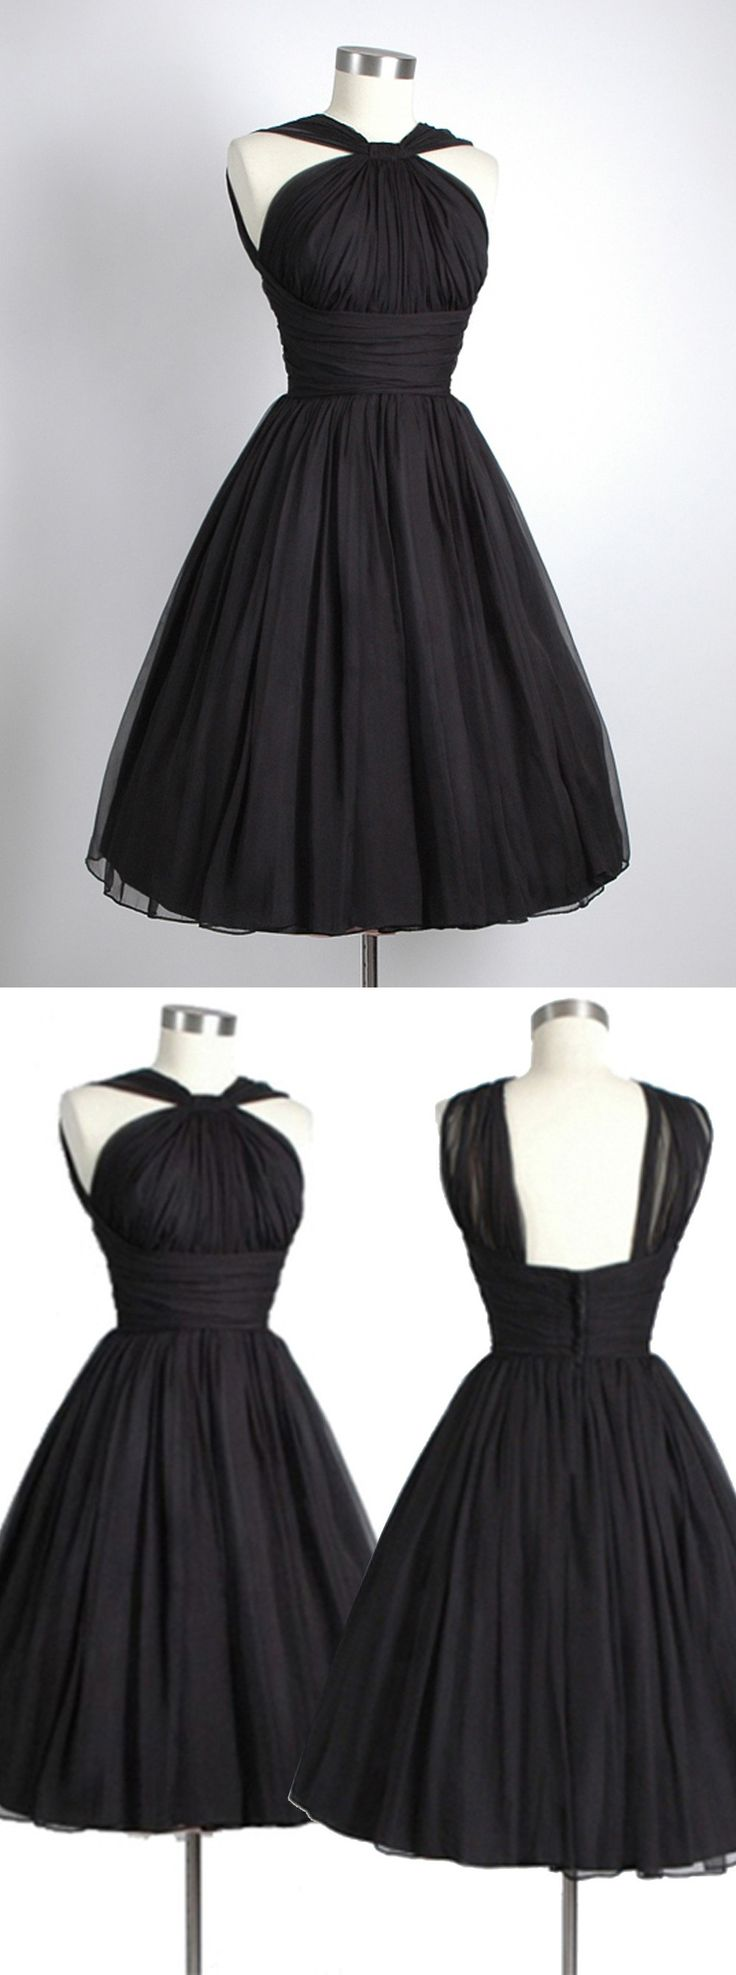 25 best ideas about vintage black dresses on pinterest 1950s swing dress pretty dresses and. Black Bedroom Furniture Sets. Home Design Ideas